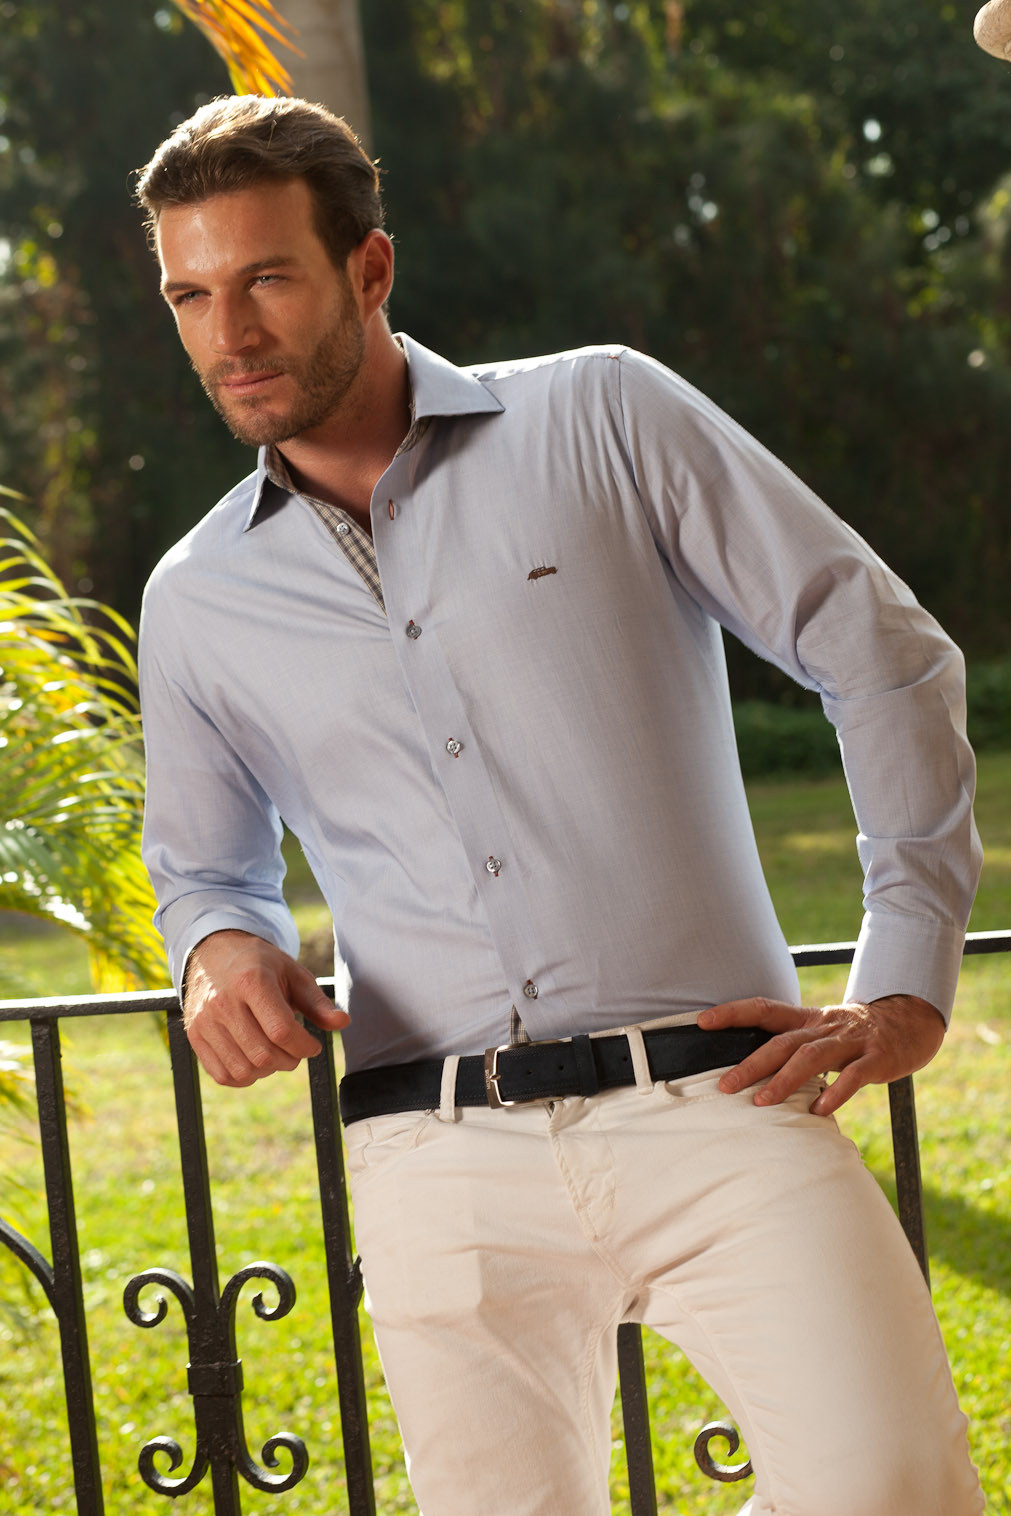 Men's Dress Shirts | Light Blue Shirt with Brown Plaid Accents | Miltiadis XIII 13